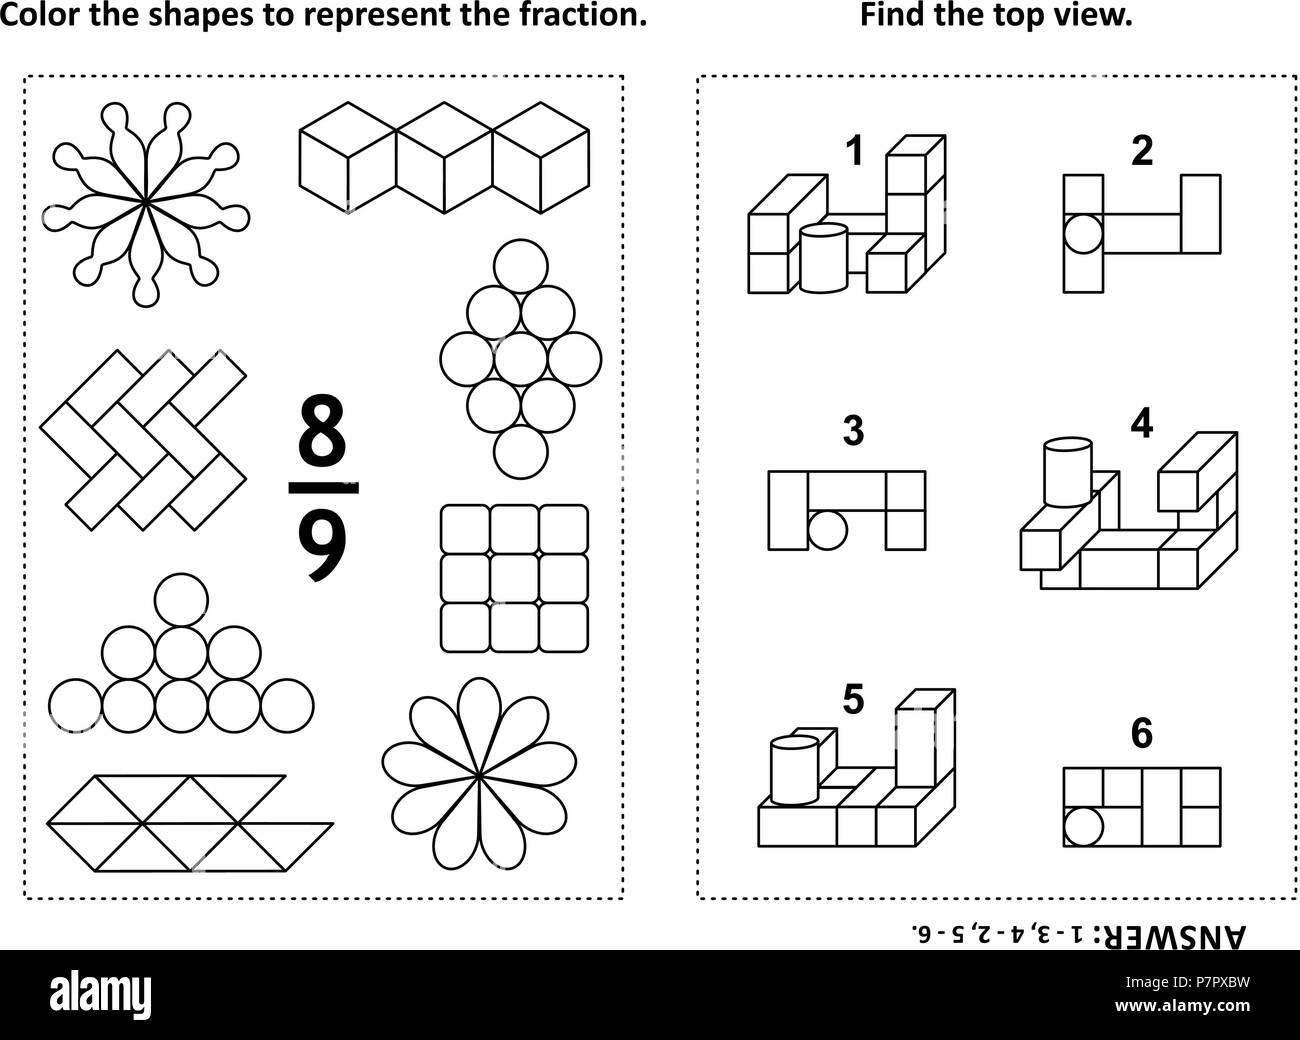 Two visual math puzzles and coloring pages. Color the shapes to ...